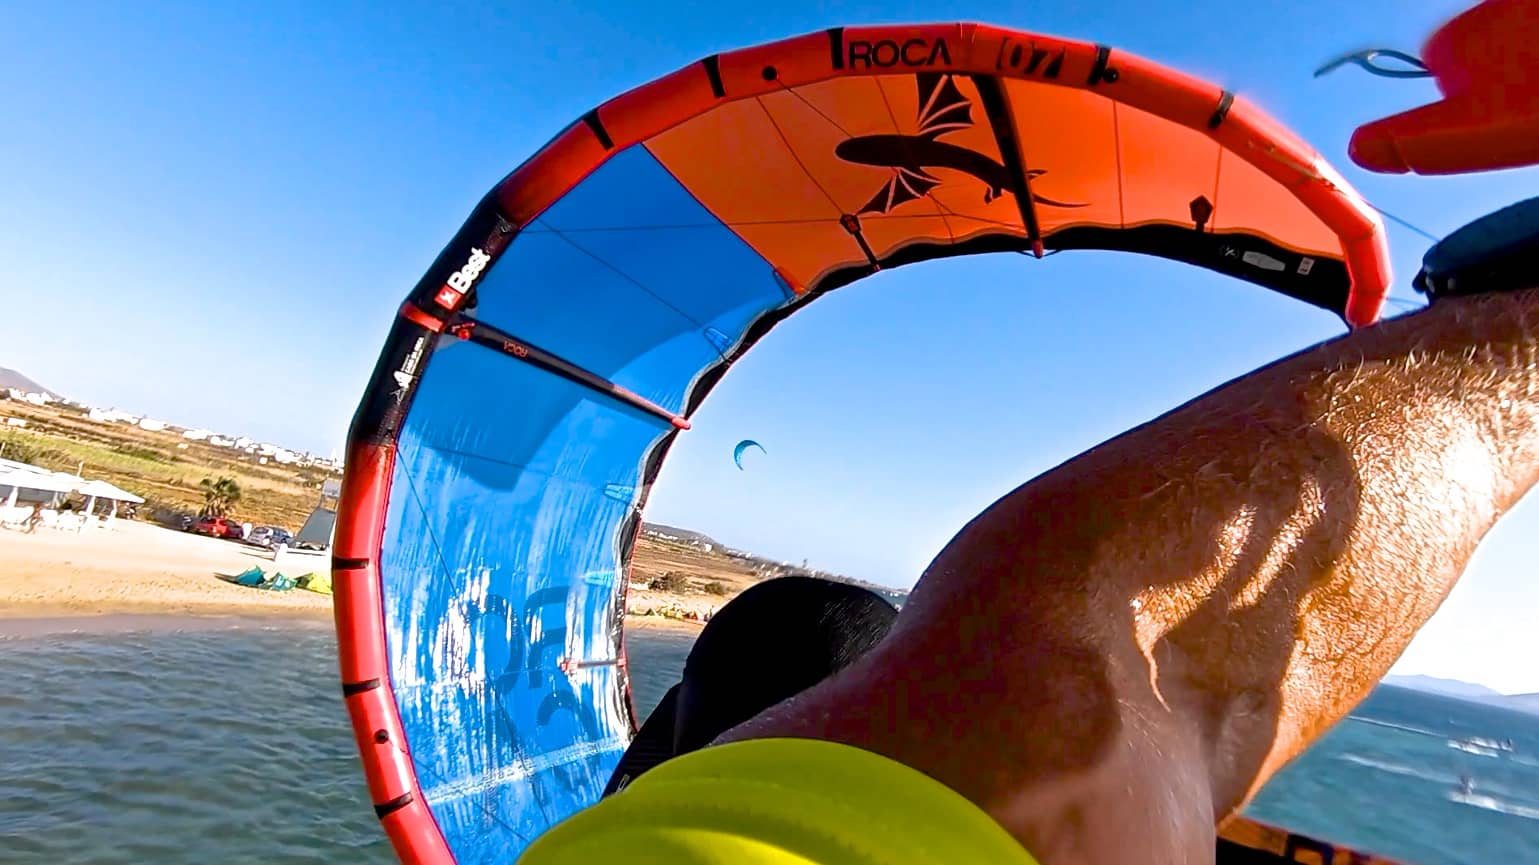 RESPECT THE BEGINNERS - with Epic Kites Kiteboarding